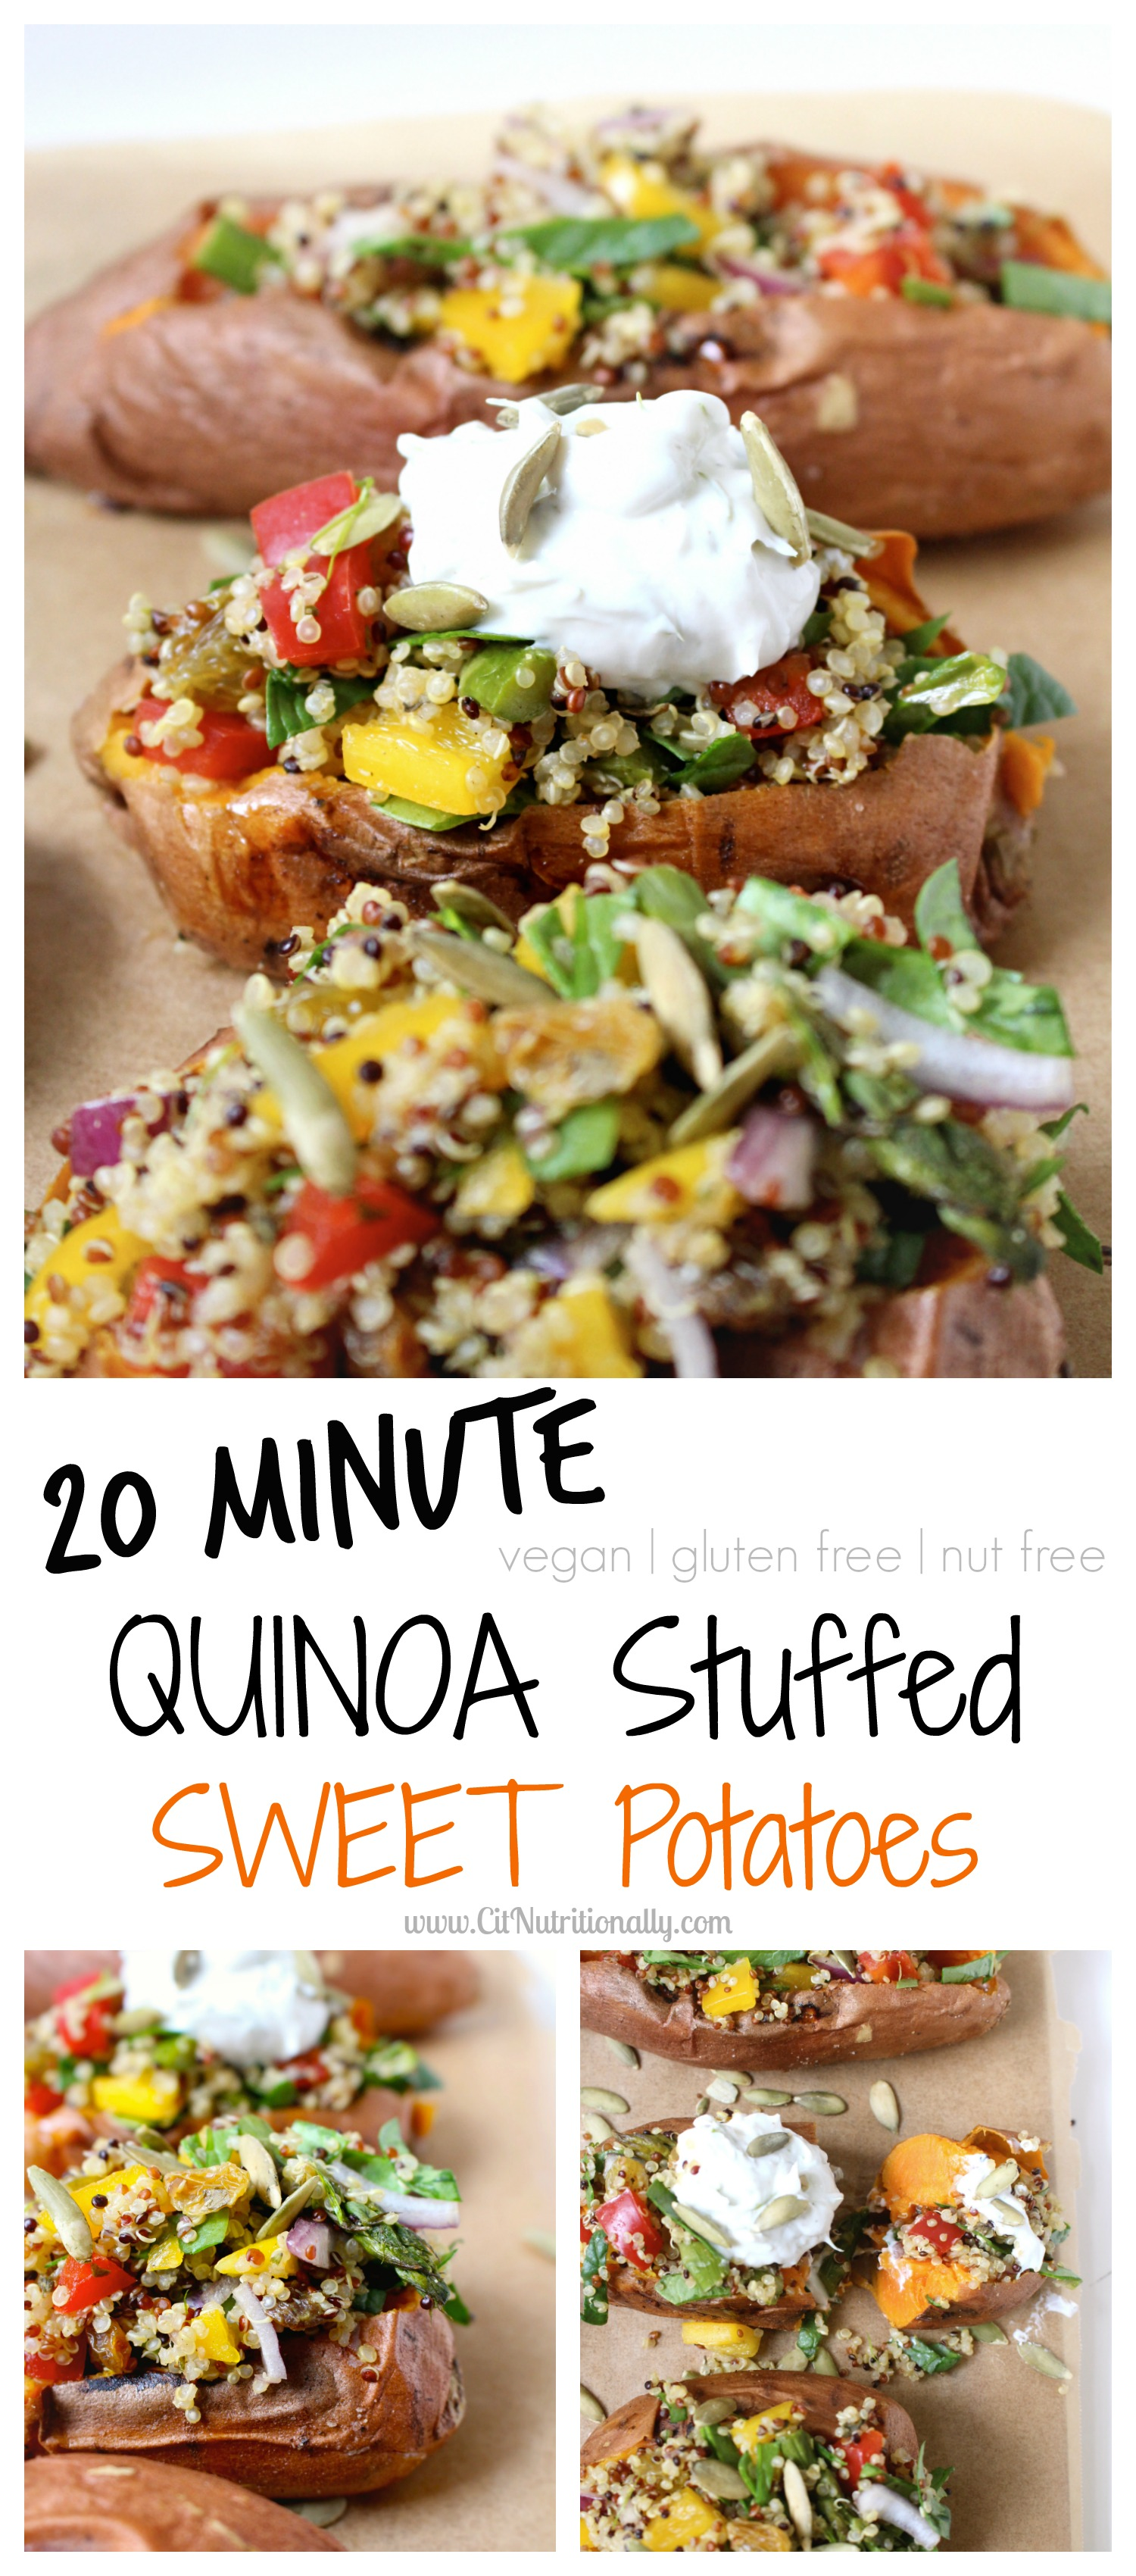 Comforting, flavorful, colorful and oh so good for you…Make weeknight cooking easy with these Quinoa Stuffed Sweet Potatoes…a healthy, plant-based meal you can get on the table in as little as 20 minutes! Vegan, gluten free, dairy free, nut free! Quinoa Stuffed Sweet Potatoes | C it Nutritionally